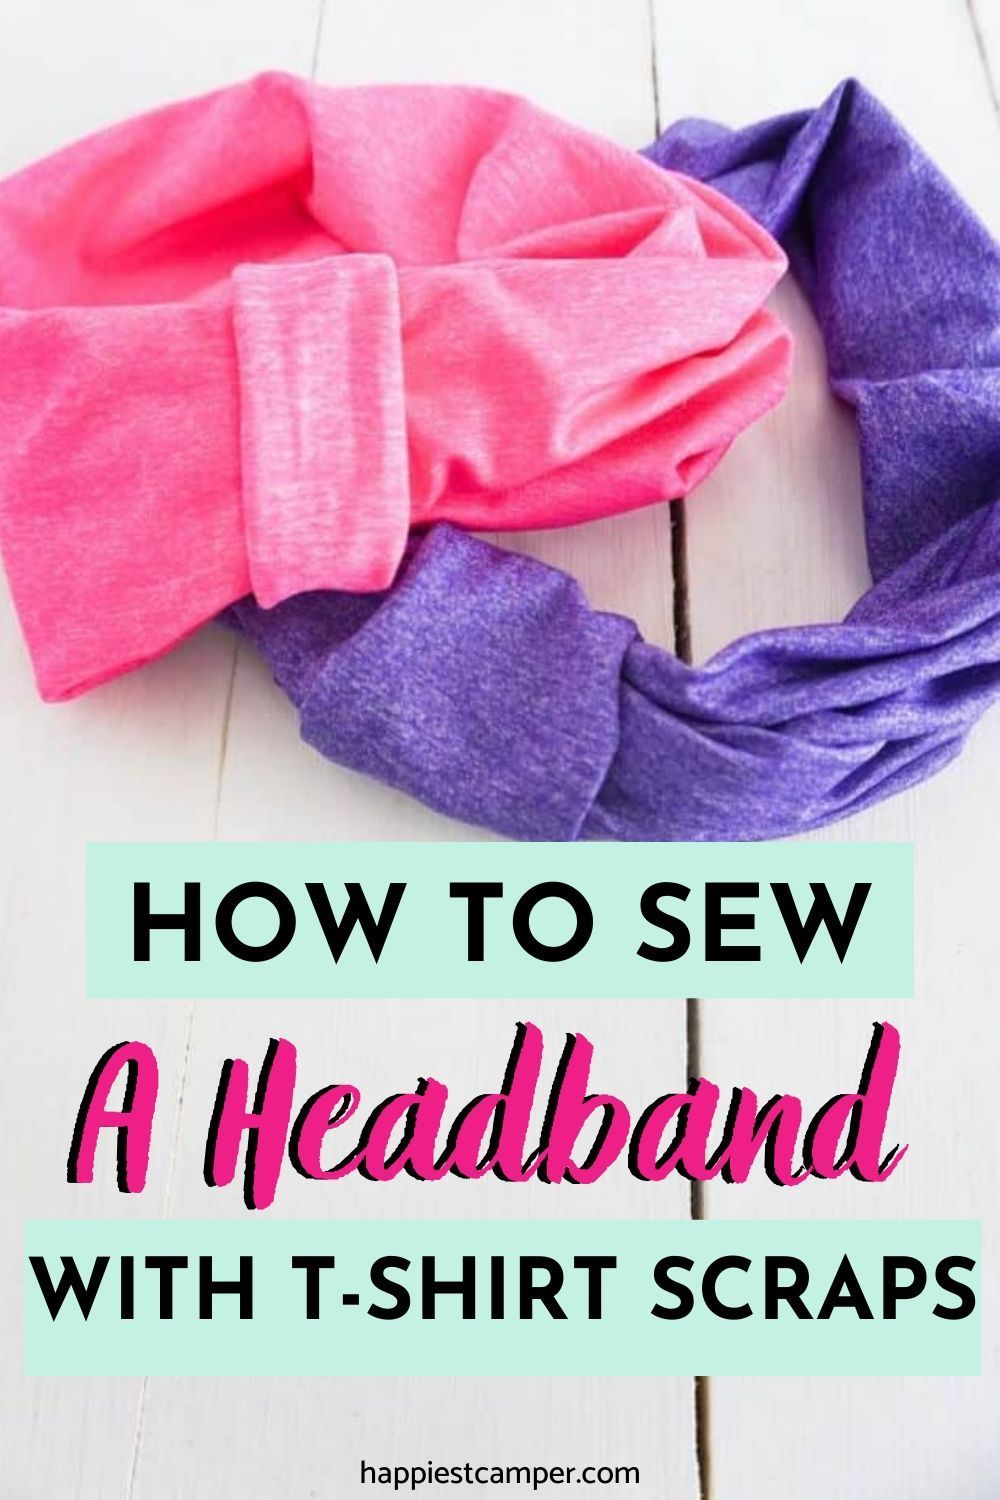 How to sew a headband with tshirt scraps in 2020 small